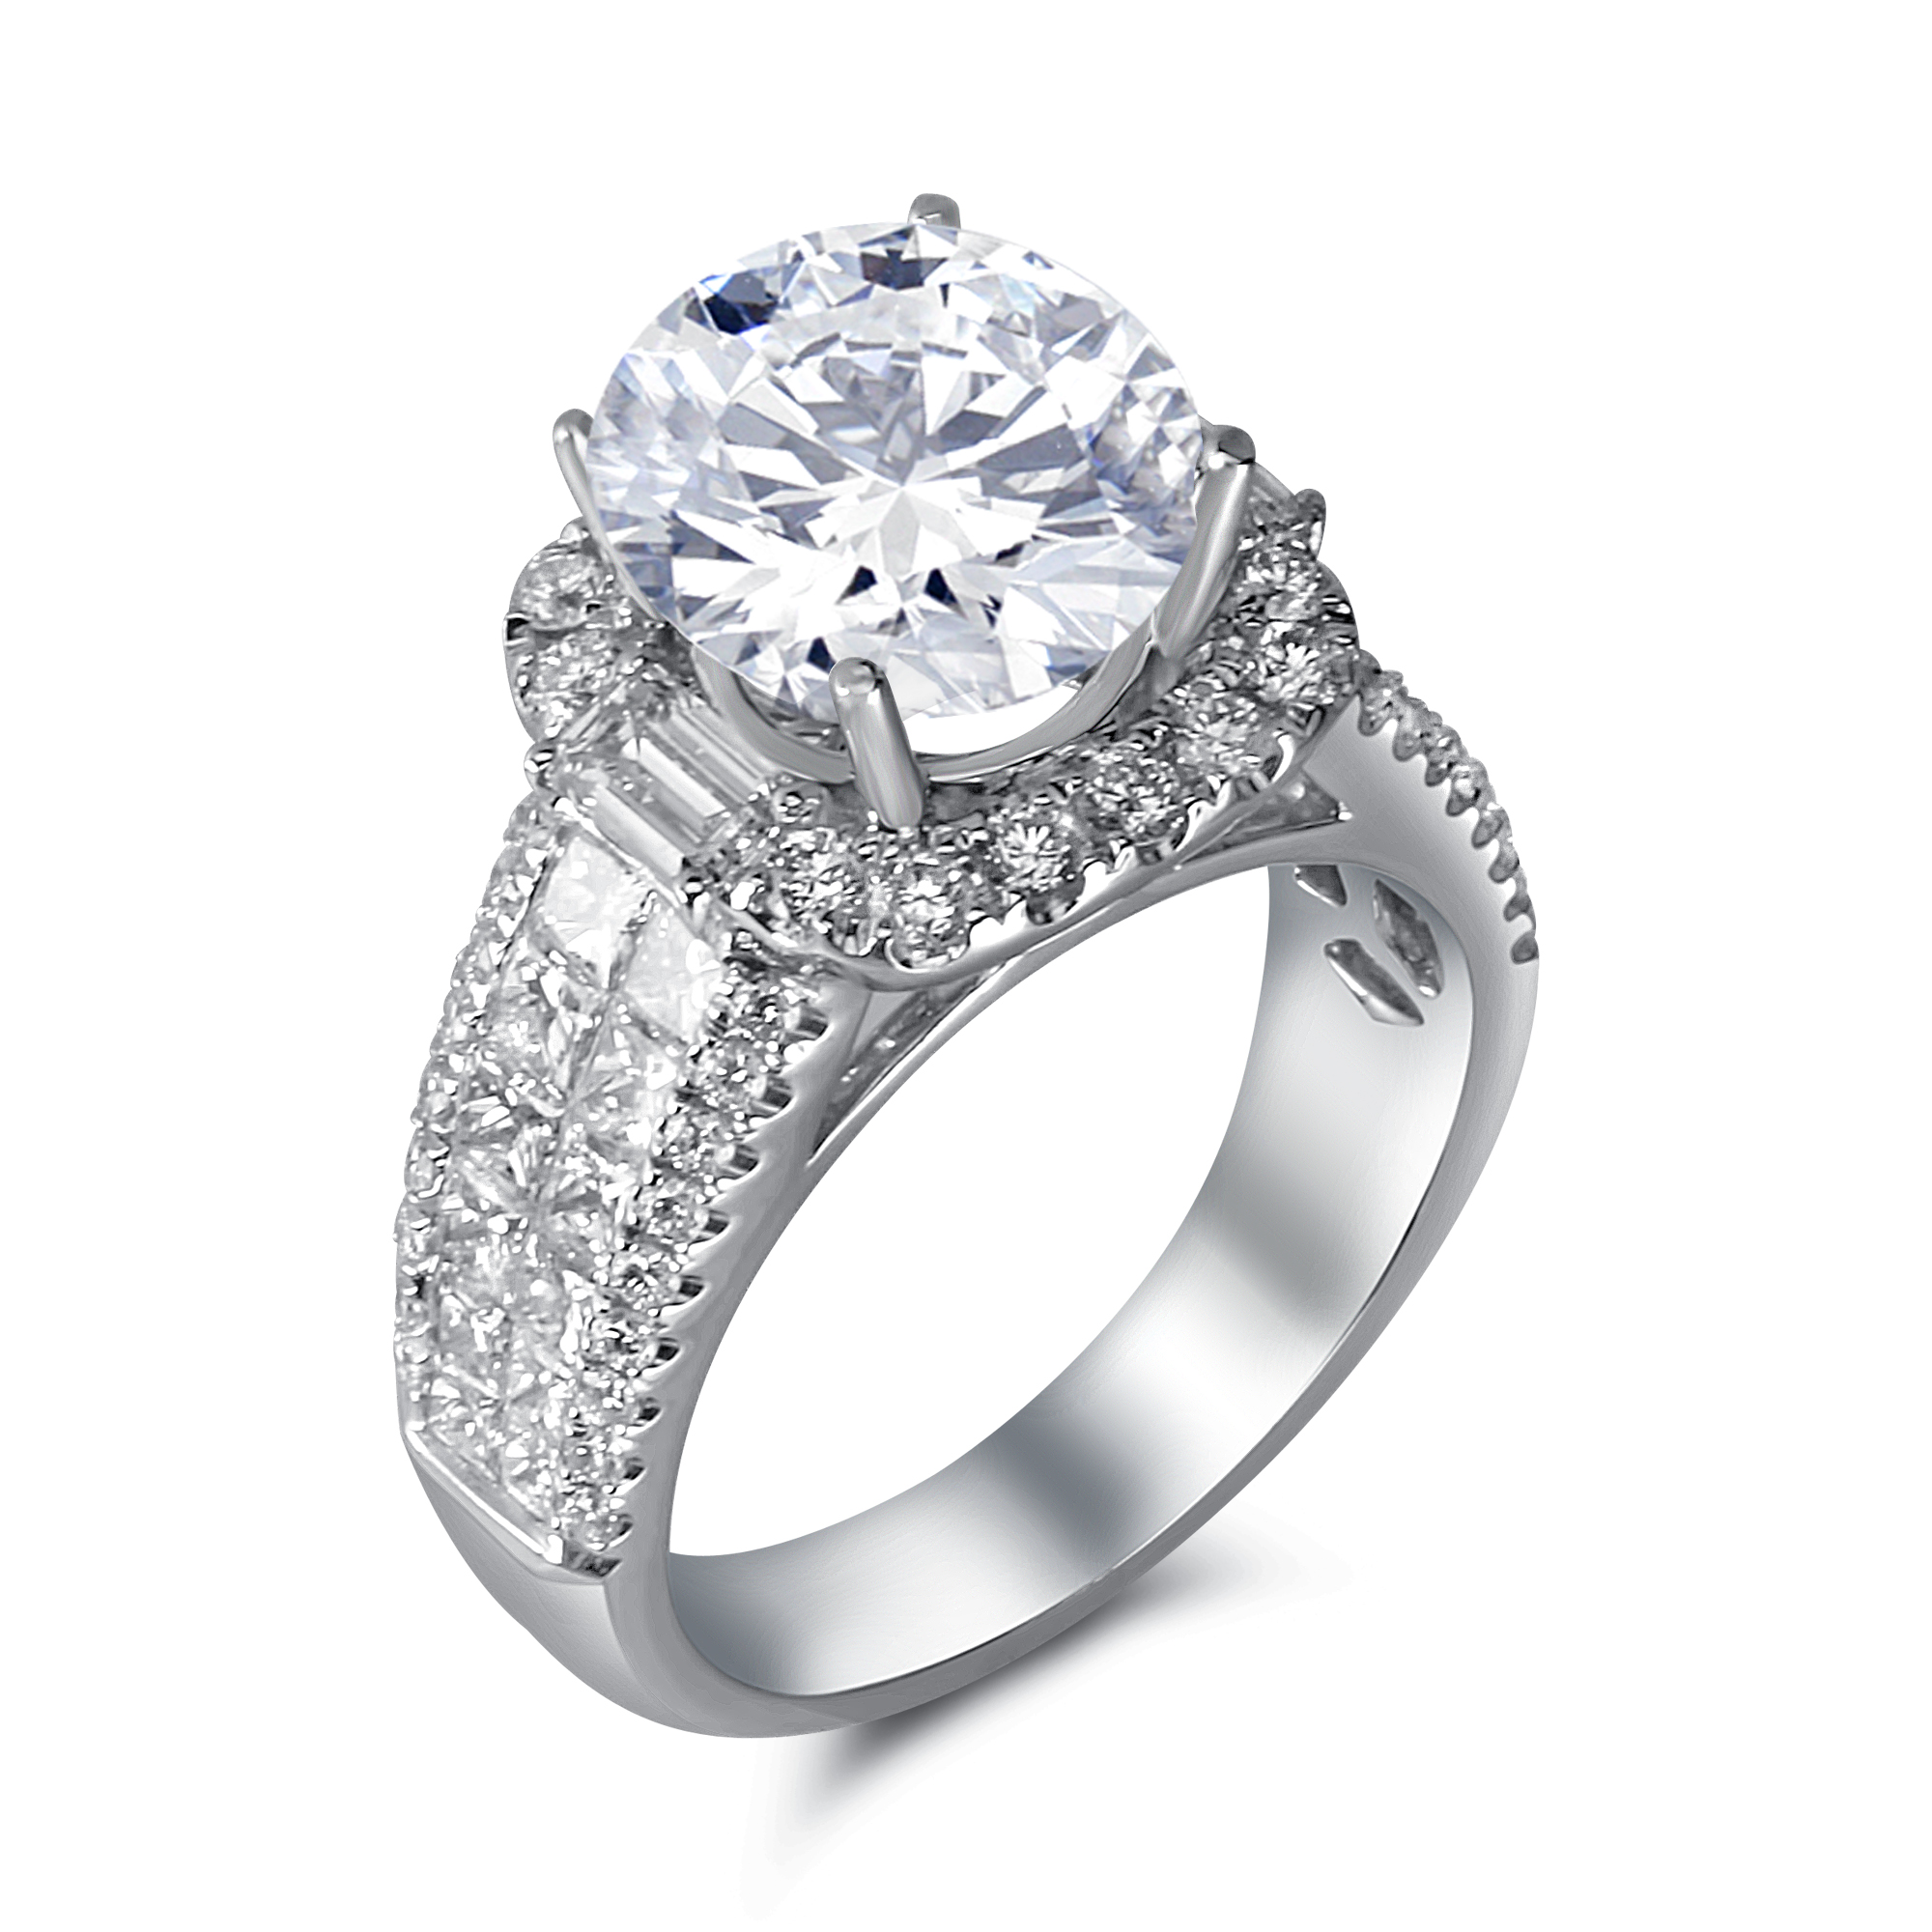 Large Cushion Halo With Princess Cut Centers And Small Round Diamonds